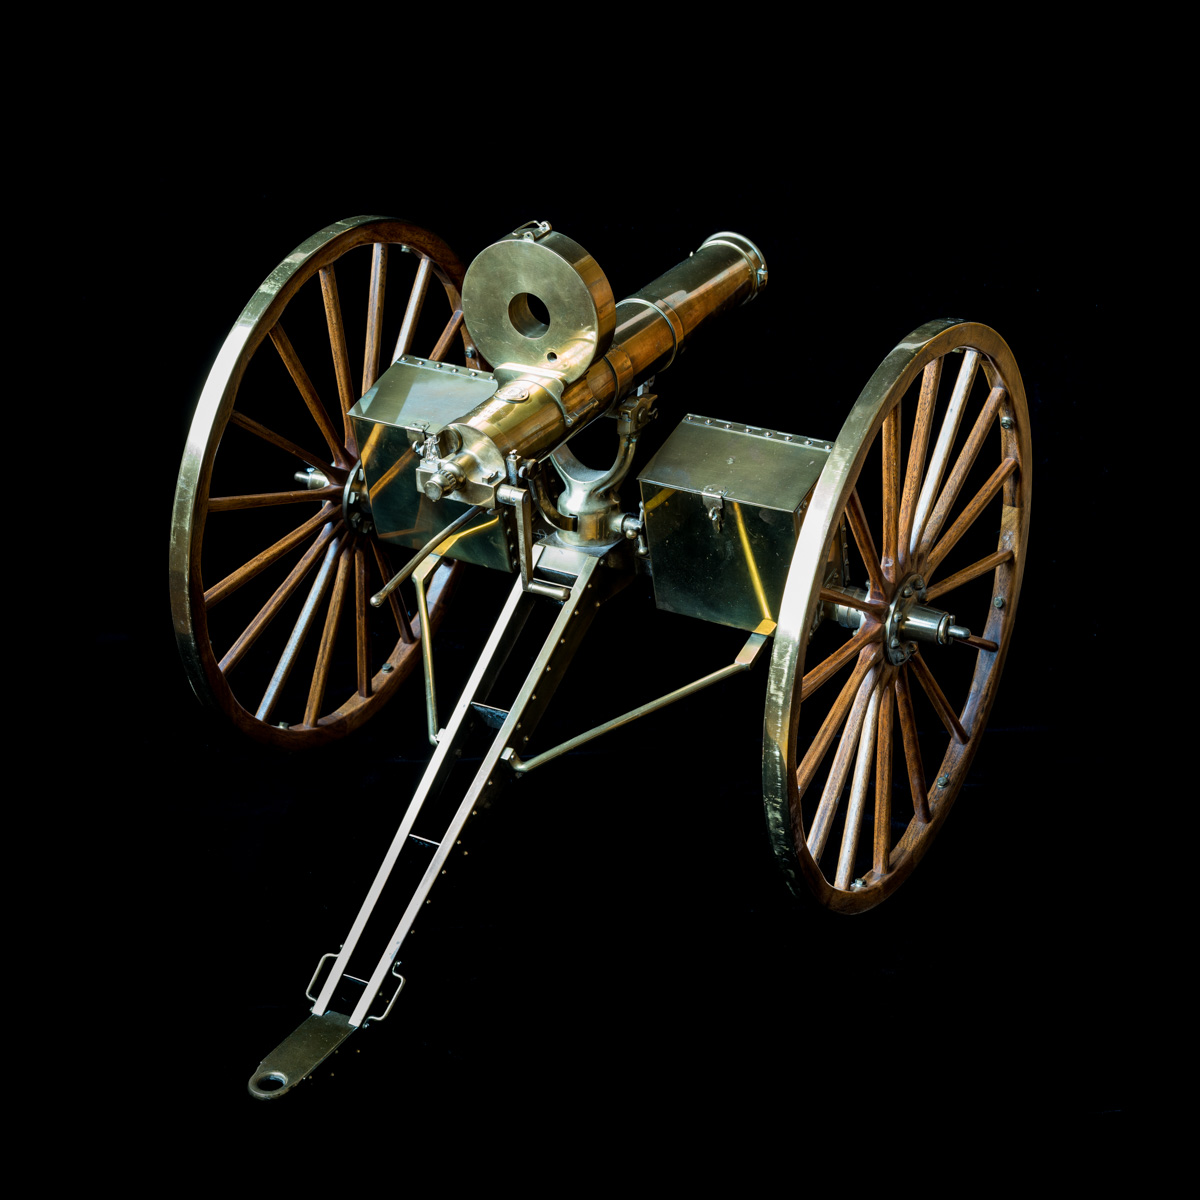 Gatling Gun 1-3rd size model-10